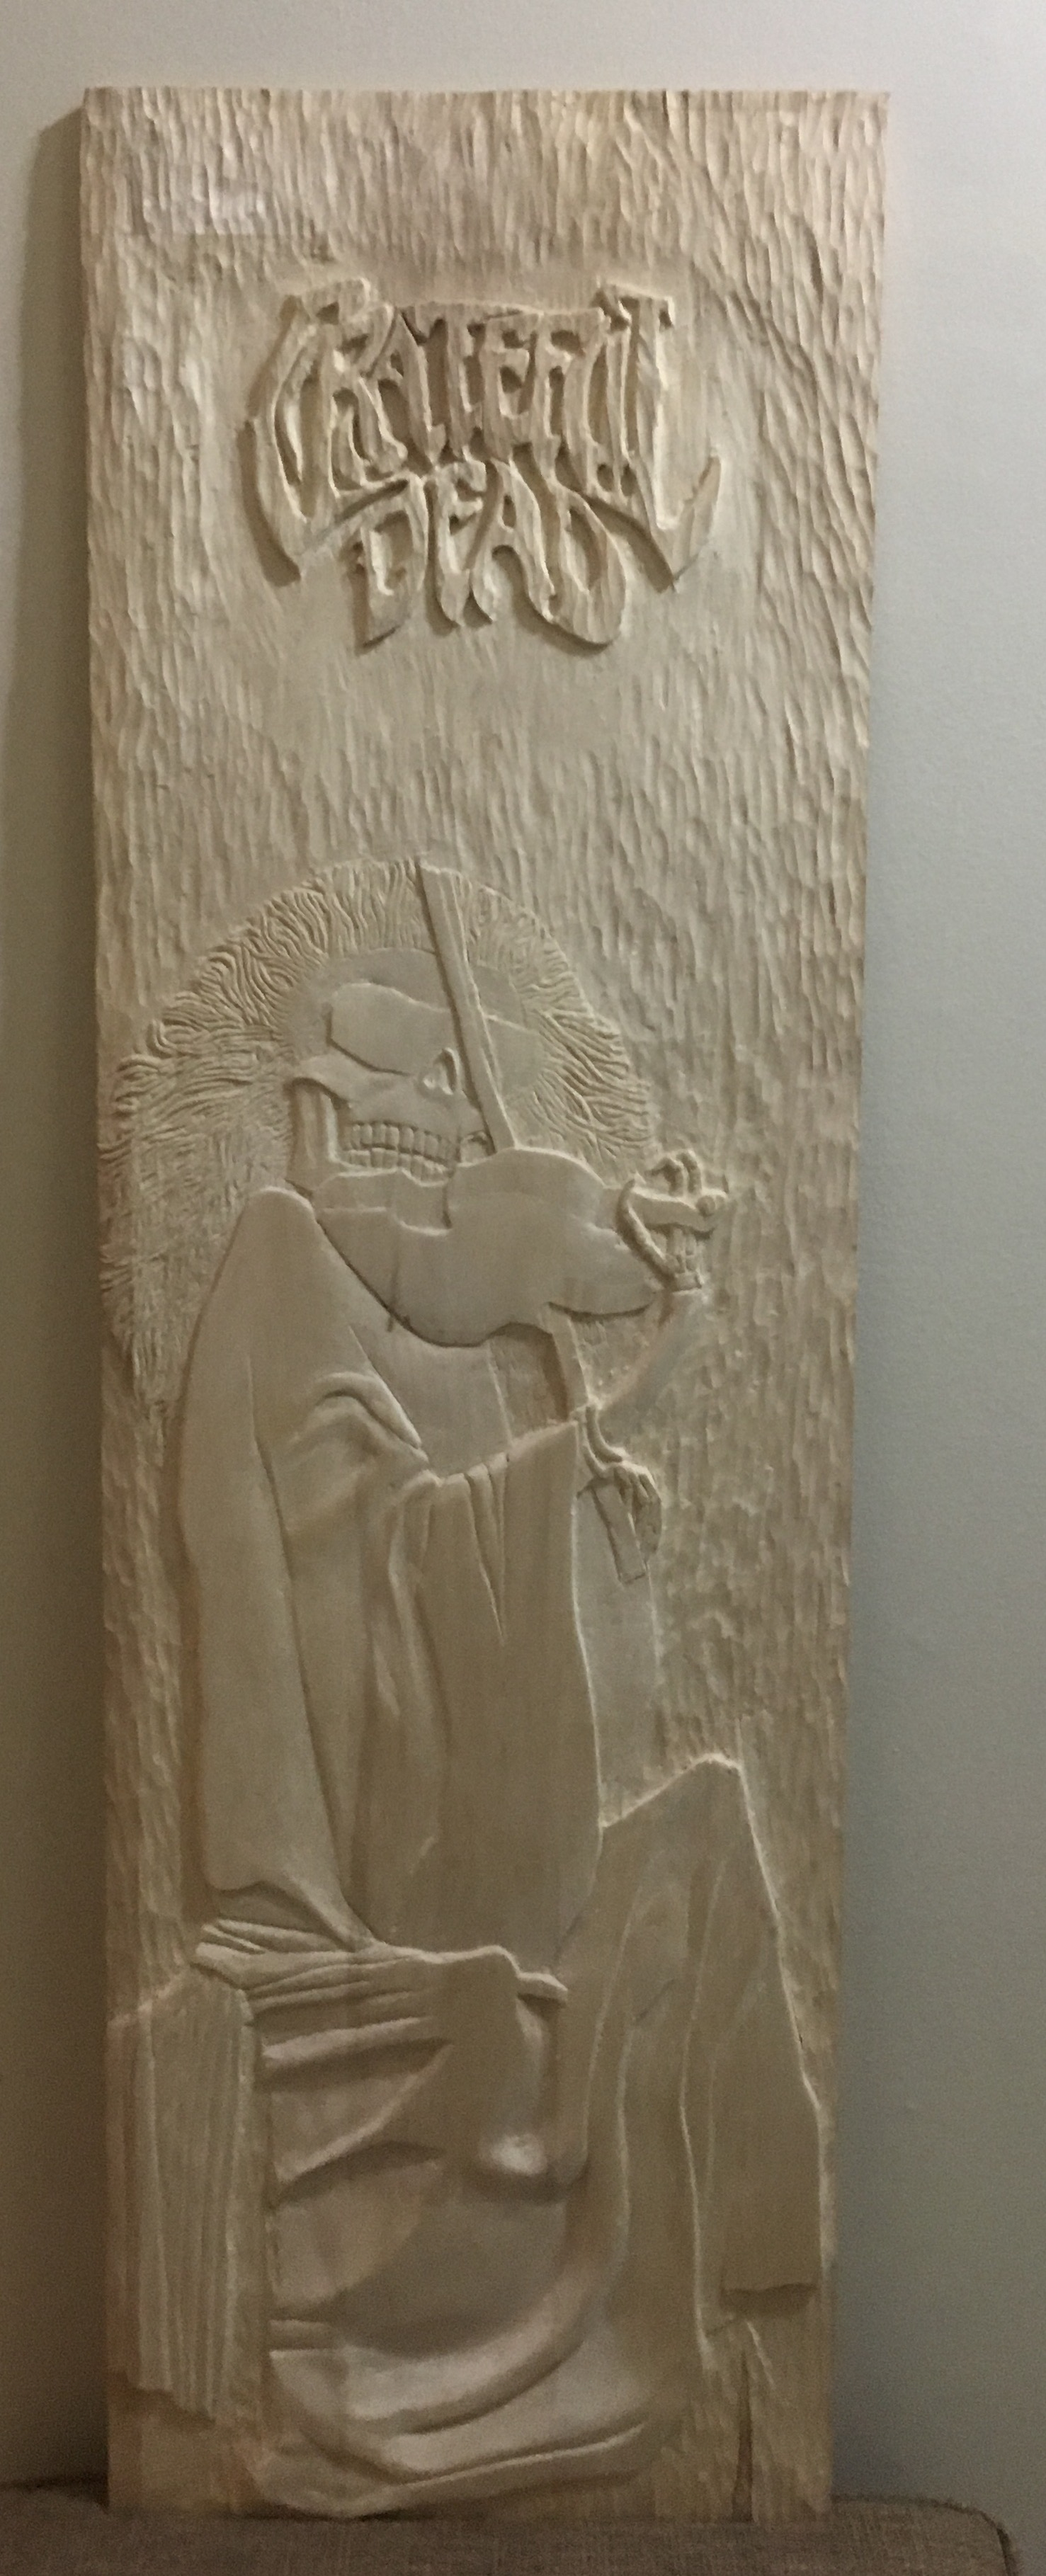 This is a carving I did from a Grateful Dead album cover.It was about 4ft by 1 1/2ft